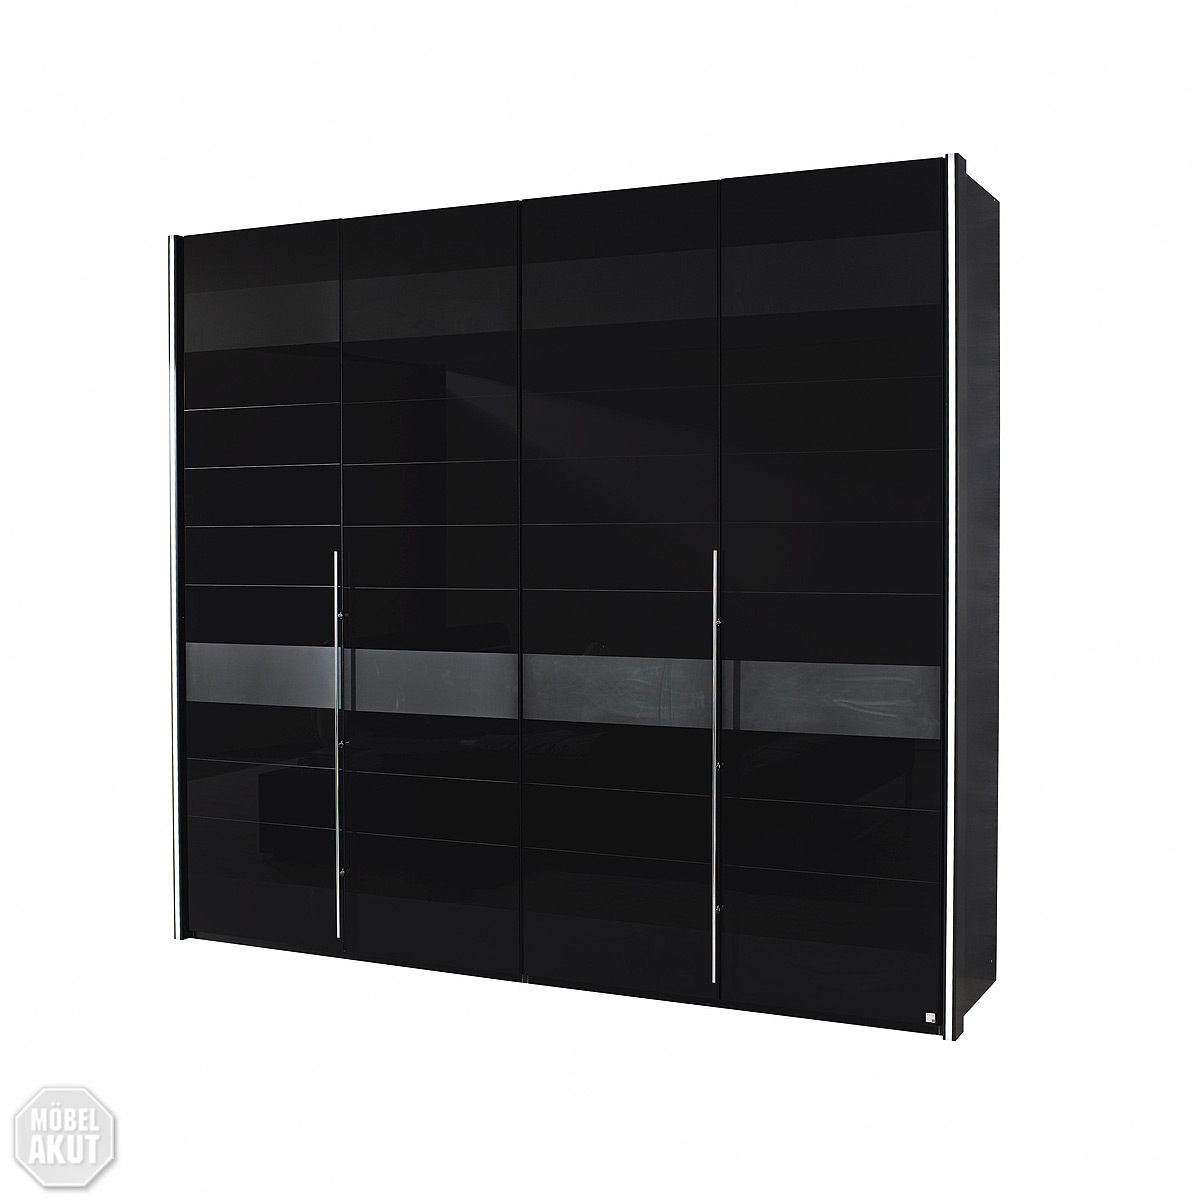 kleiderschrank nala schlafzimmerschrank schrank schwarz glas grau 240 cm ebay. Black Bedroom Furniture Sets. Home Design Ideas